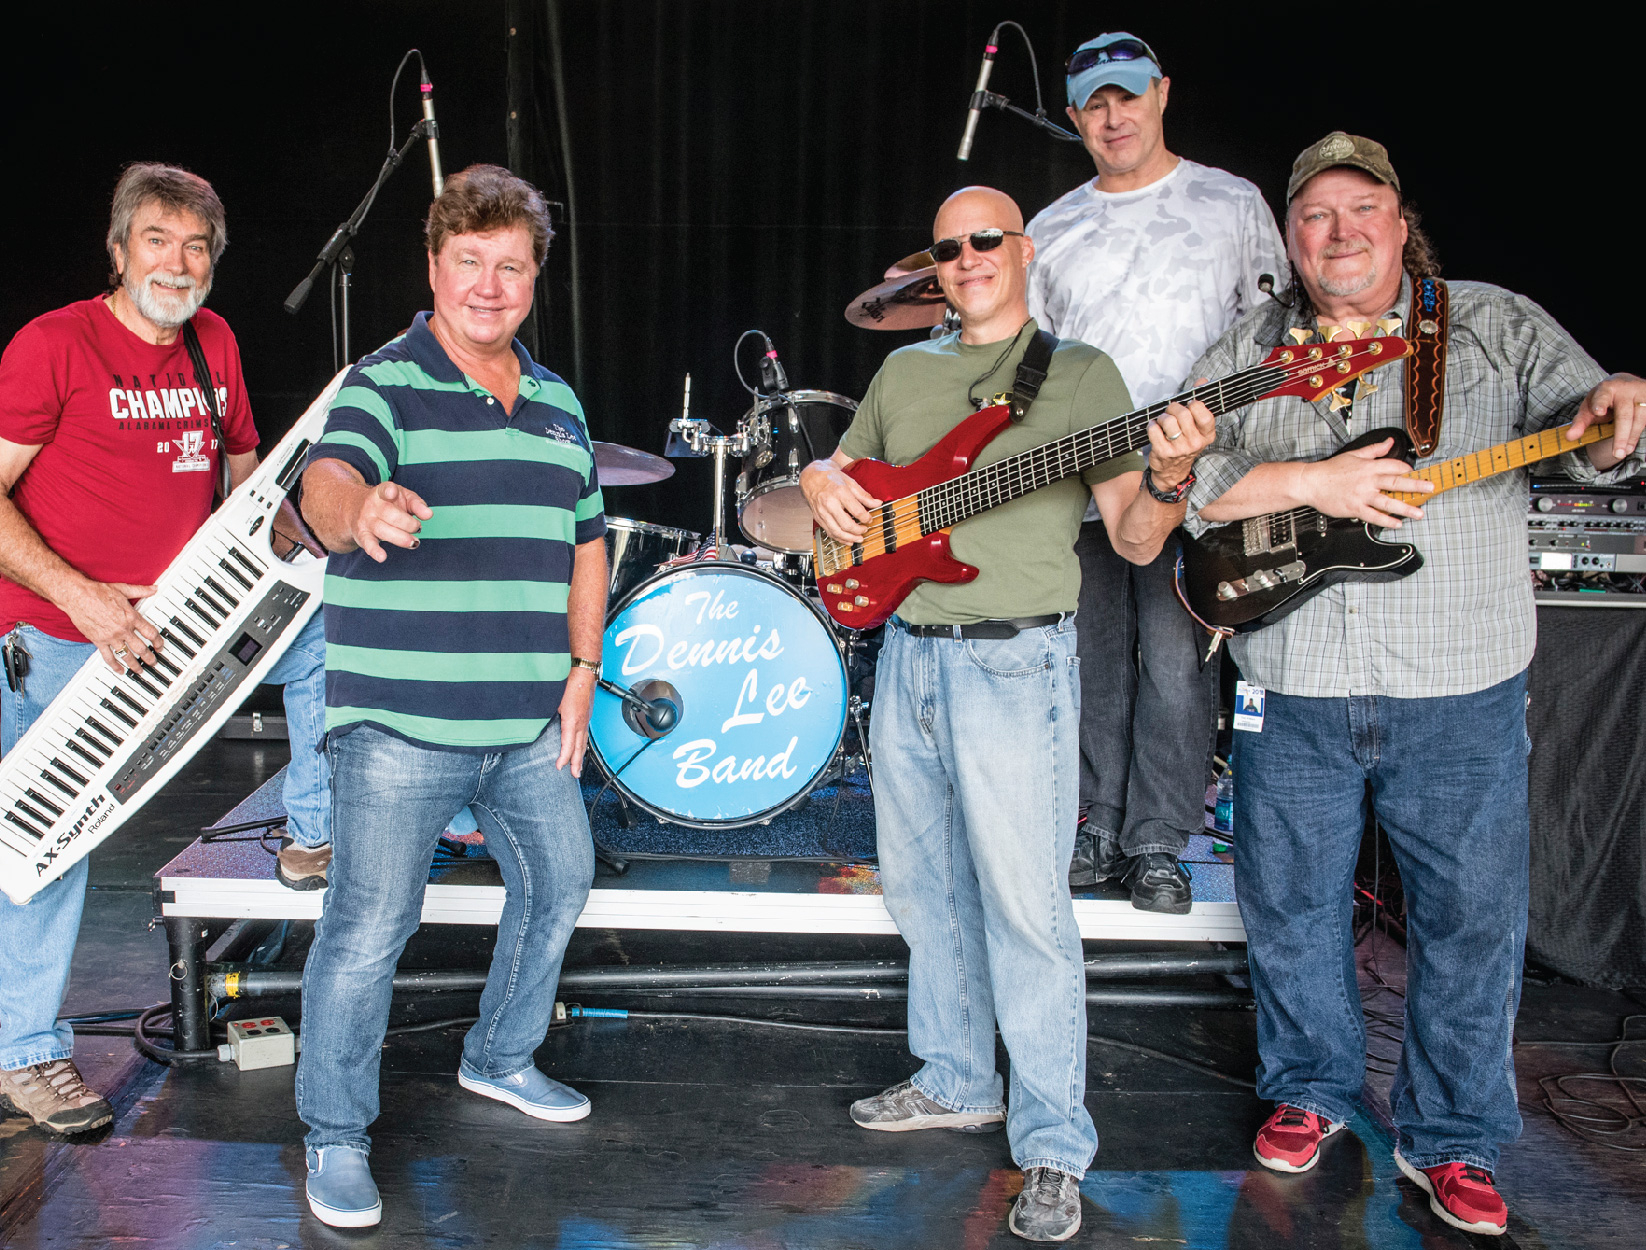 Dennis Lee Band - Florida State Fair Intended For South Florida Fairgrounds Event Schedule February 2020